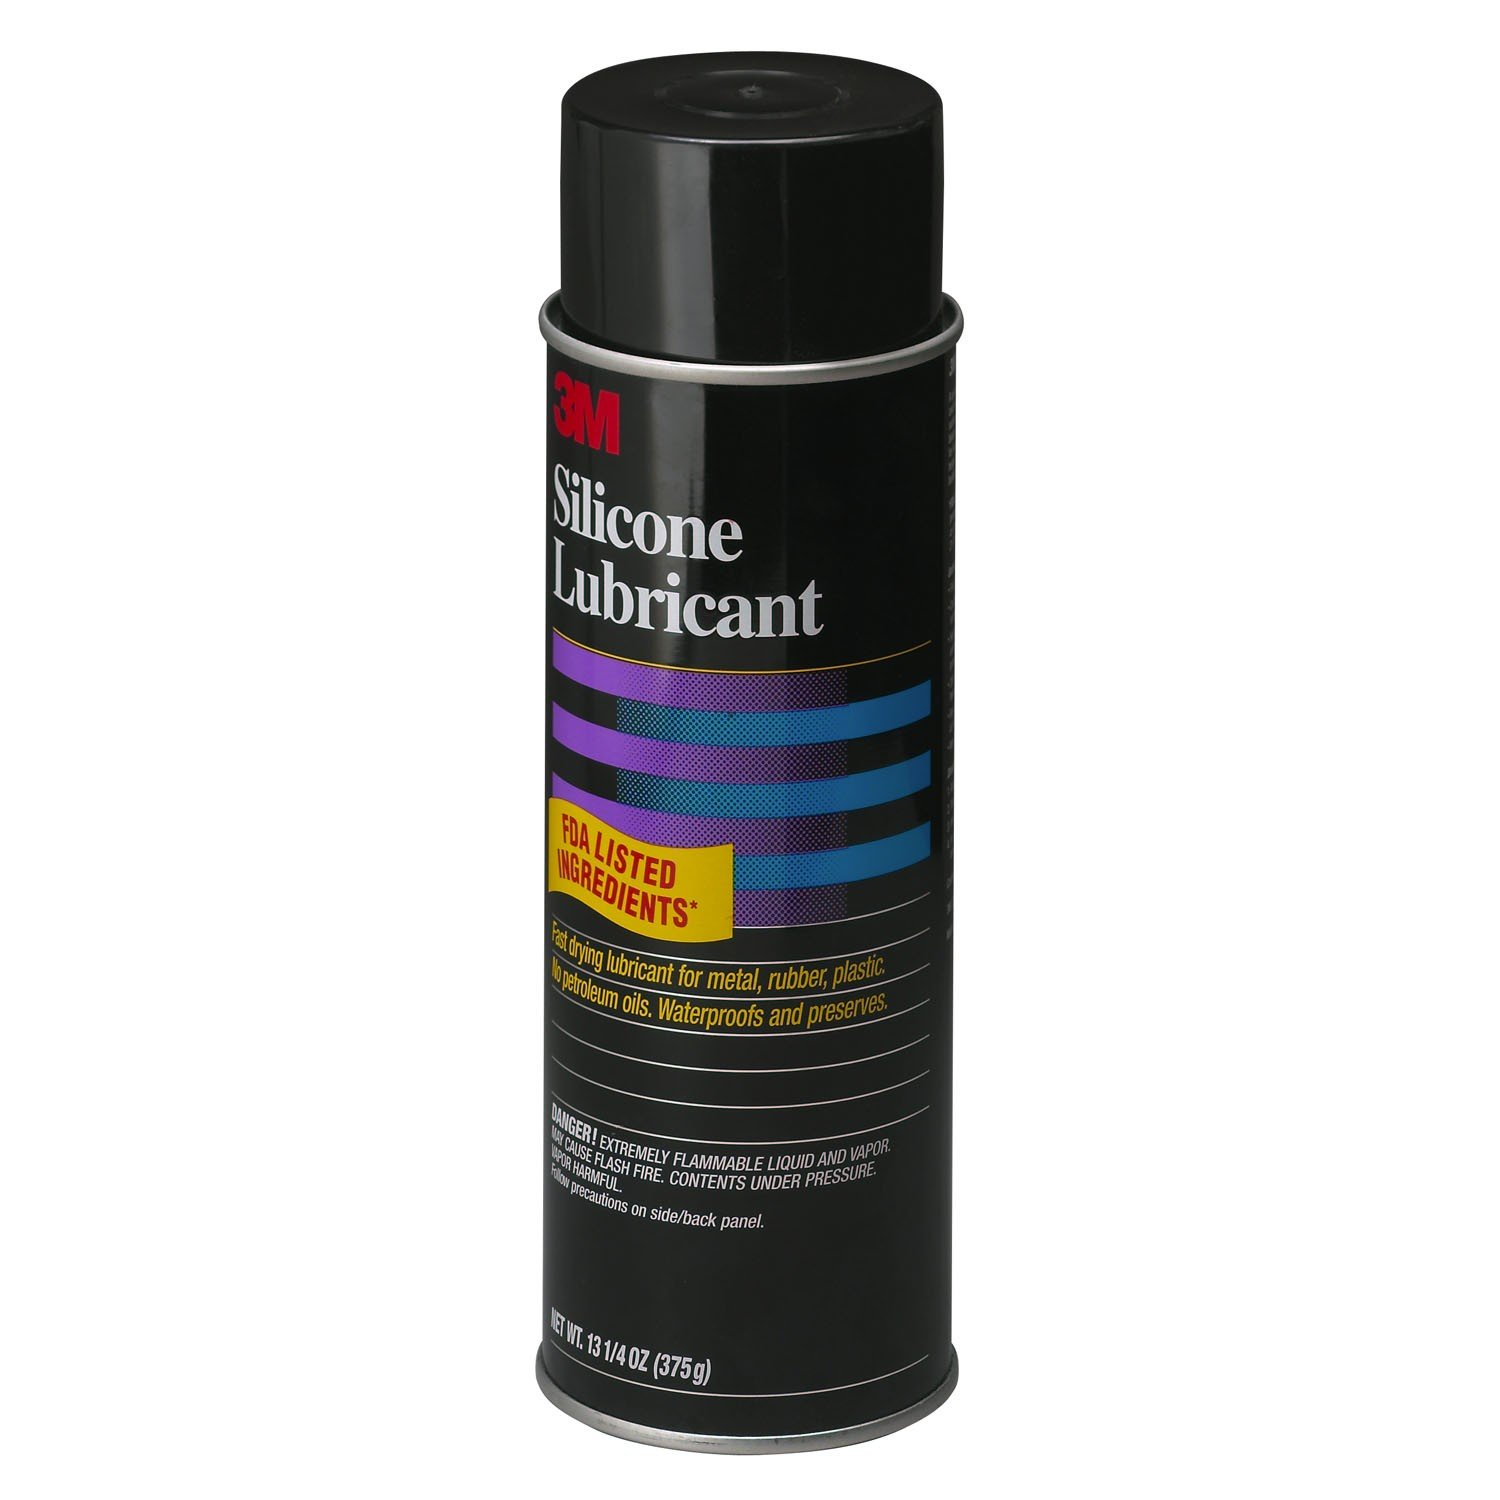 3M Silicone Lubricant 24Oz, Sold As 12 Can